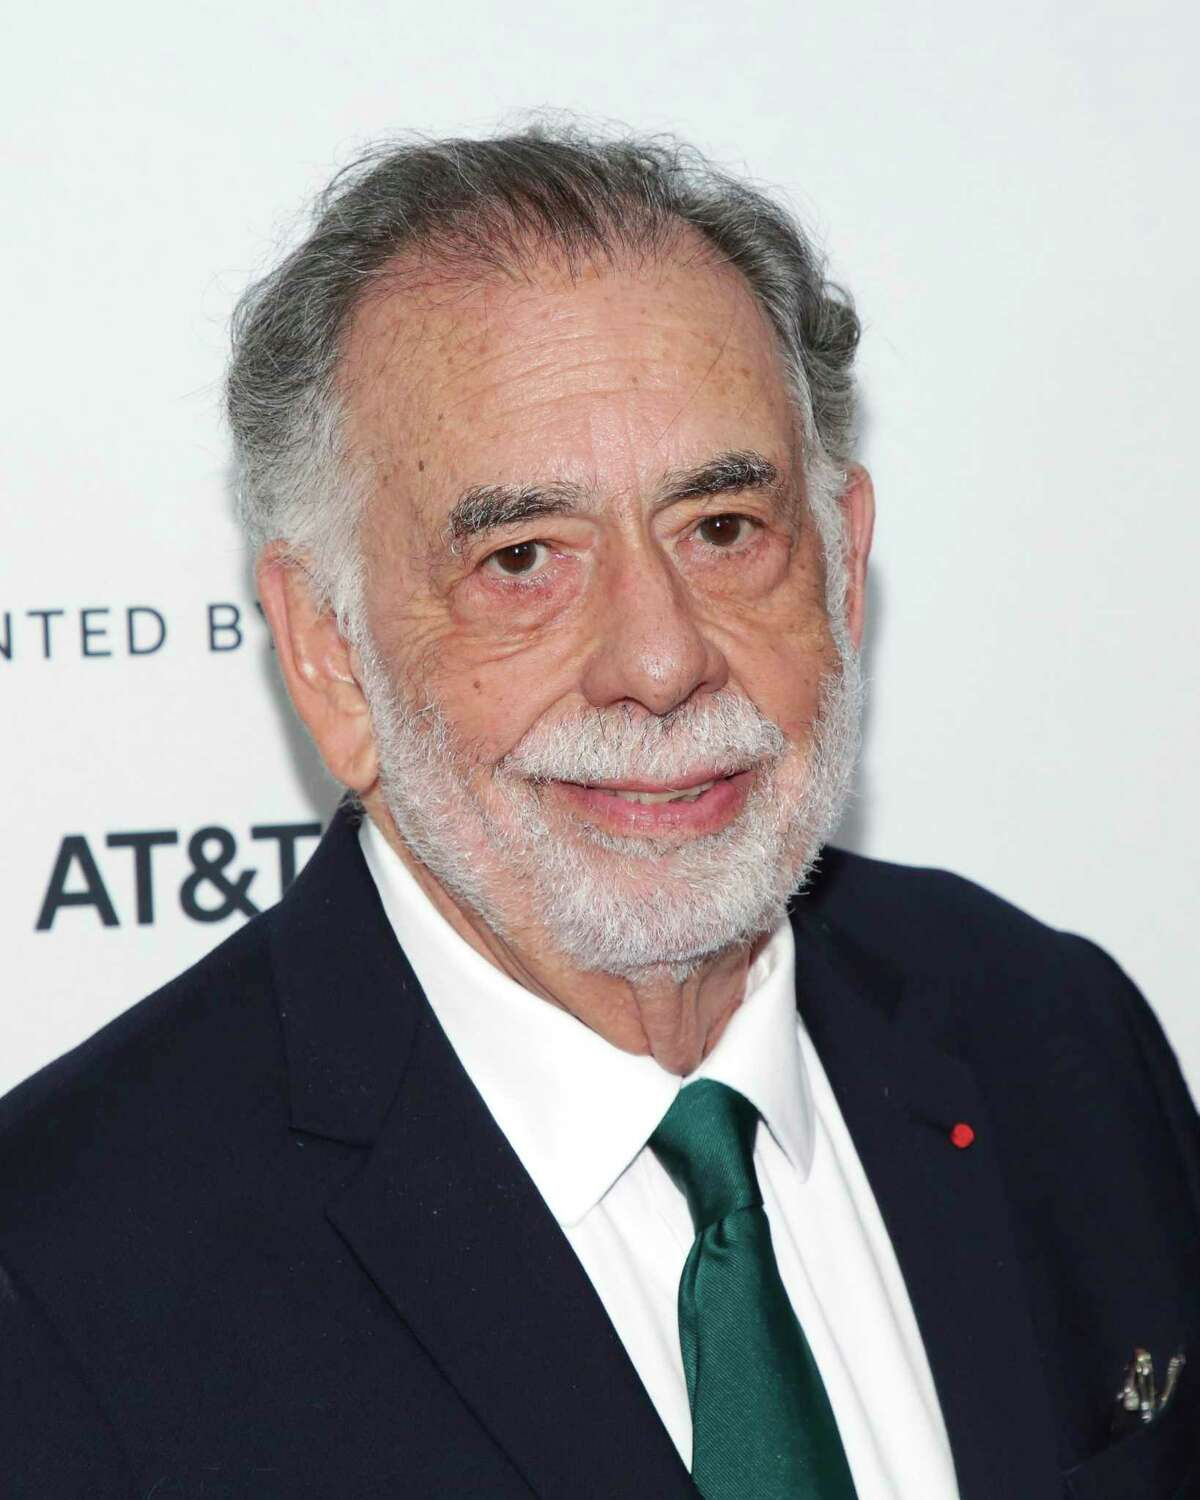 """FILE - In this Sunday, April 28, 2019 file photo, director Francis Ford Coppola attends a screening of the """"40th Anniversary and World Premiere of Apocalypse Now Final Cut"""" during the 2019 Tribeca Film Festival at the Beacon Theatre, in New York. The film releases in theaters on Aug. 15."""